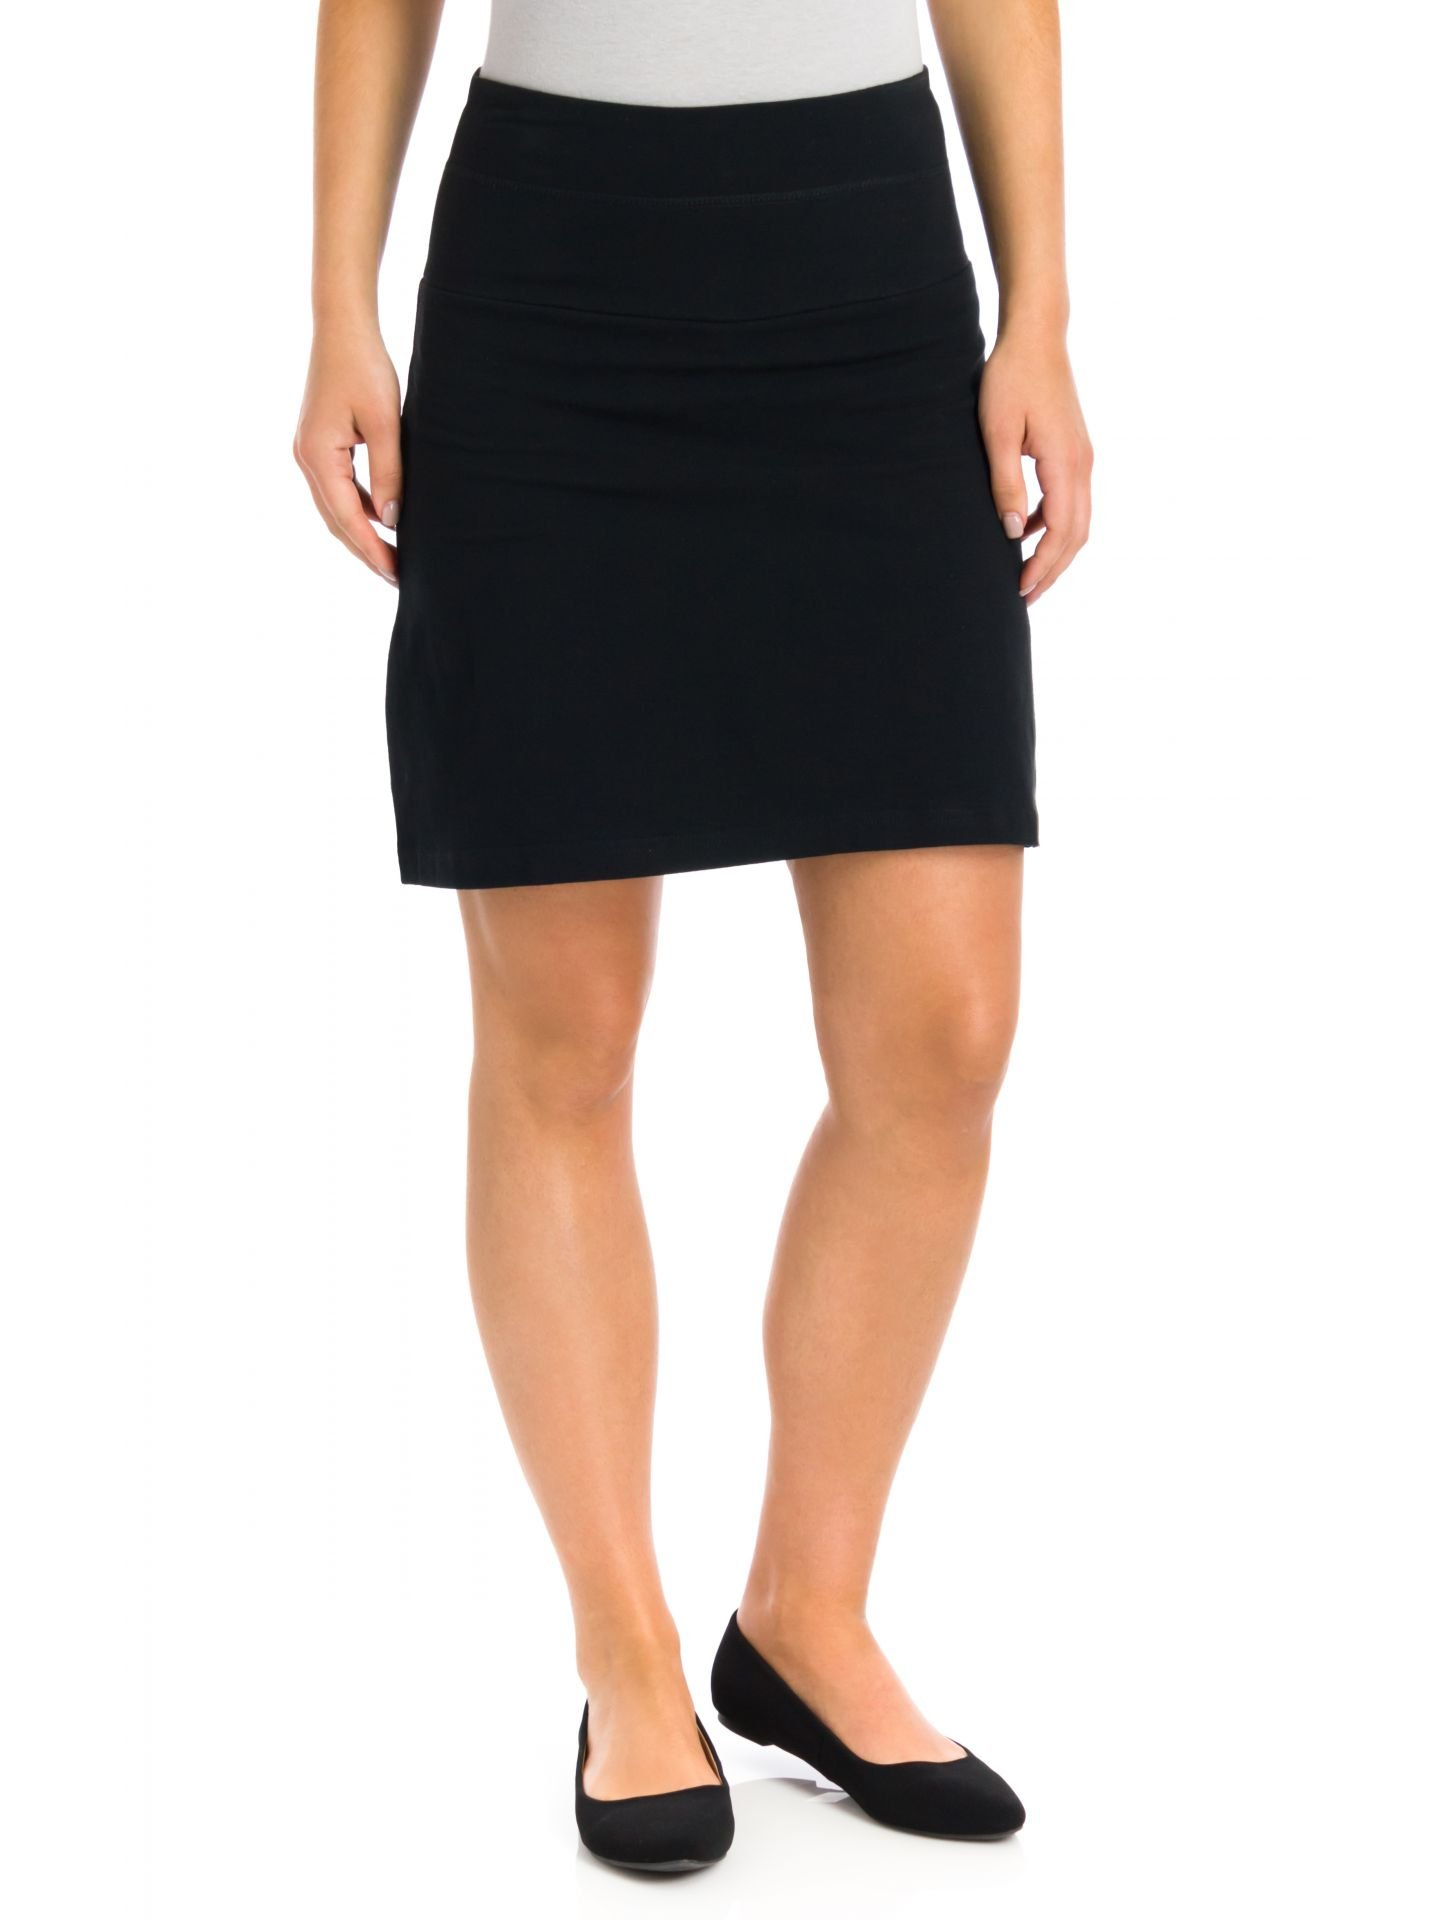 Teez-Her Women's Tummy Control Low Waist 17 Skort, Black, Small